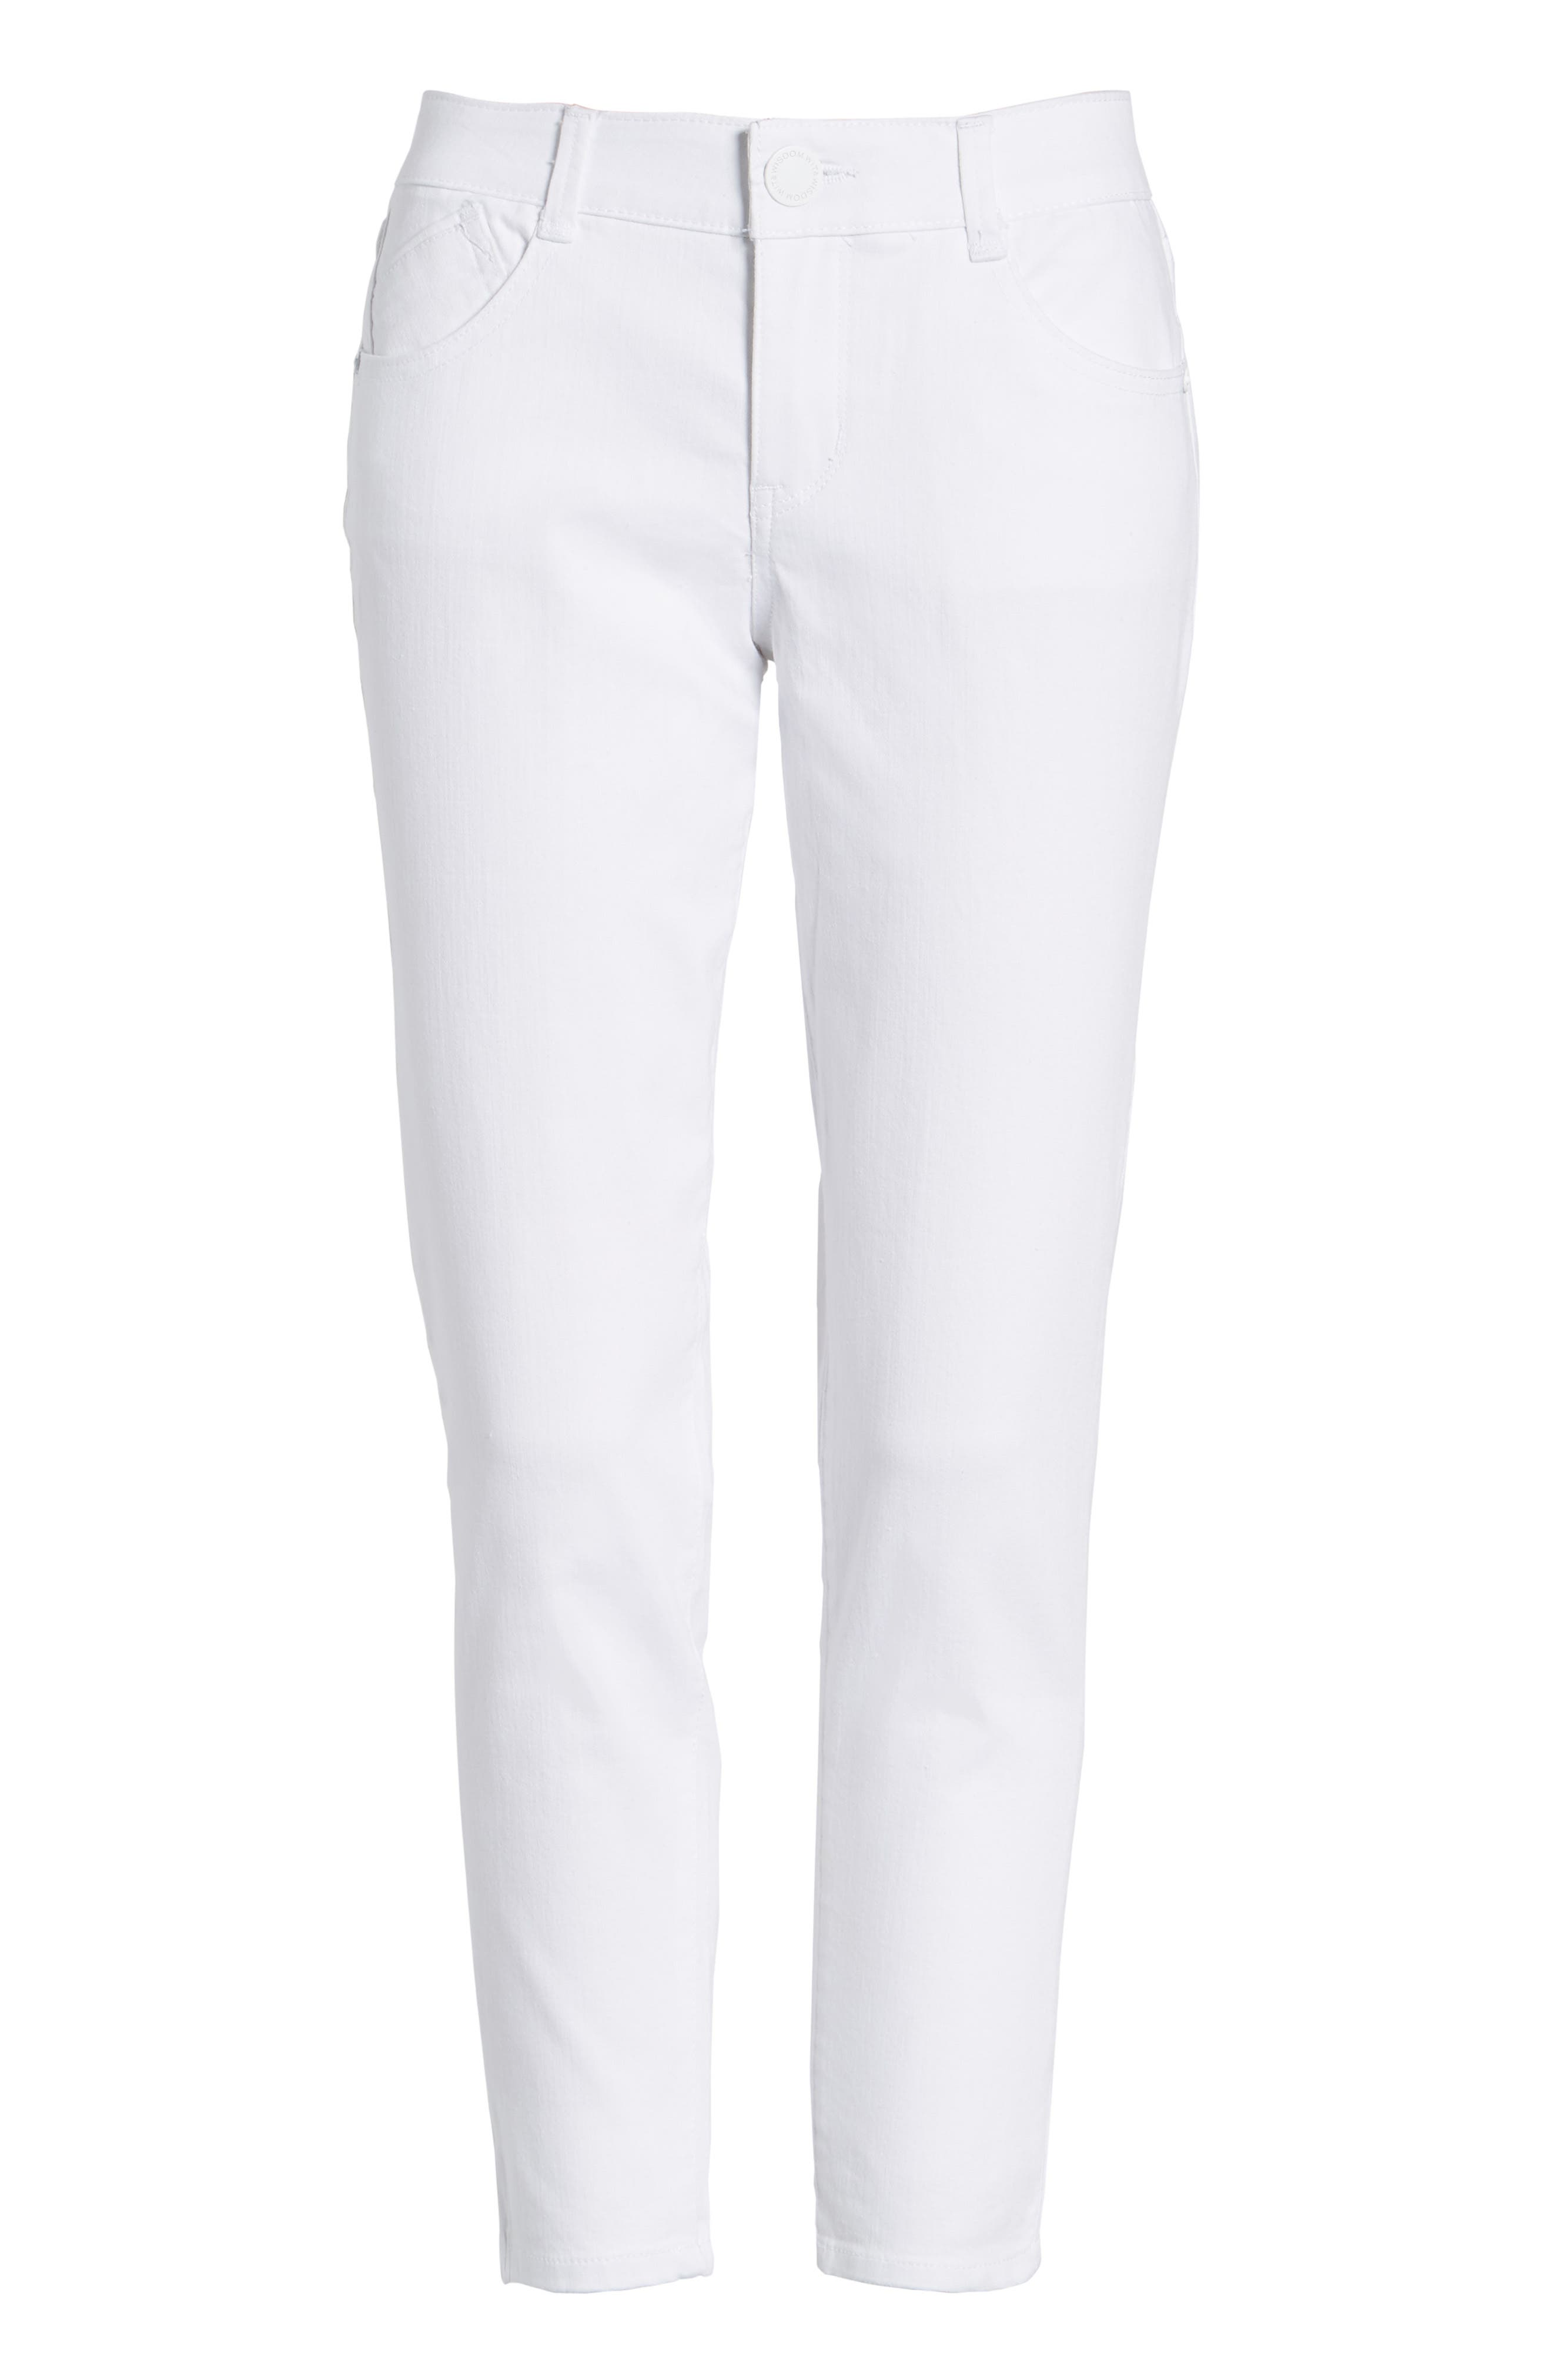 Ab-solution Skinny Crop Jeans,                             Alternate thumbnail 6, color,                             101